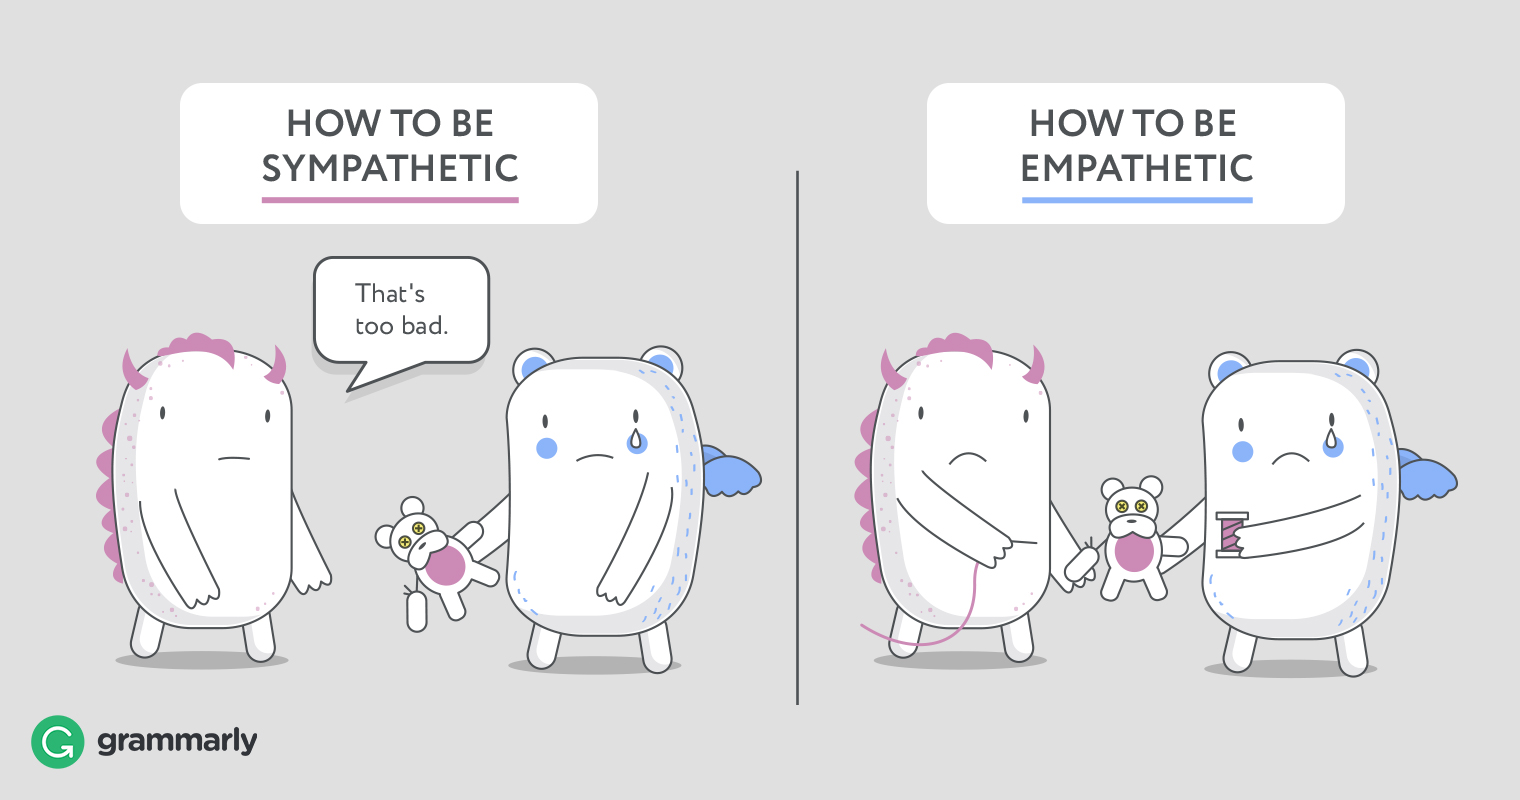 Empathetic Meaning